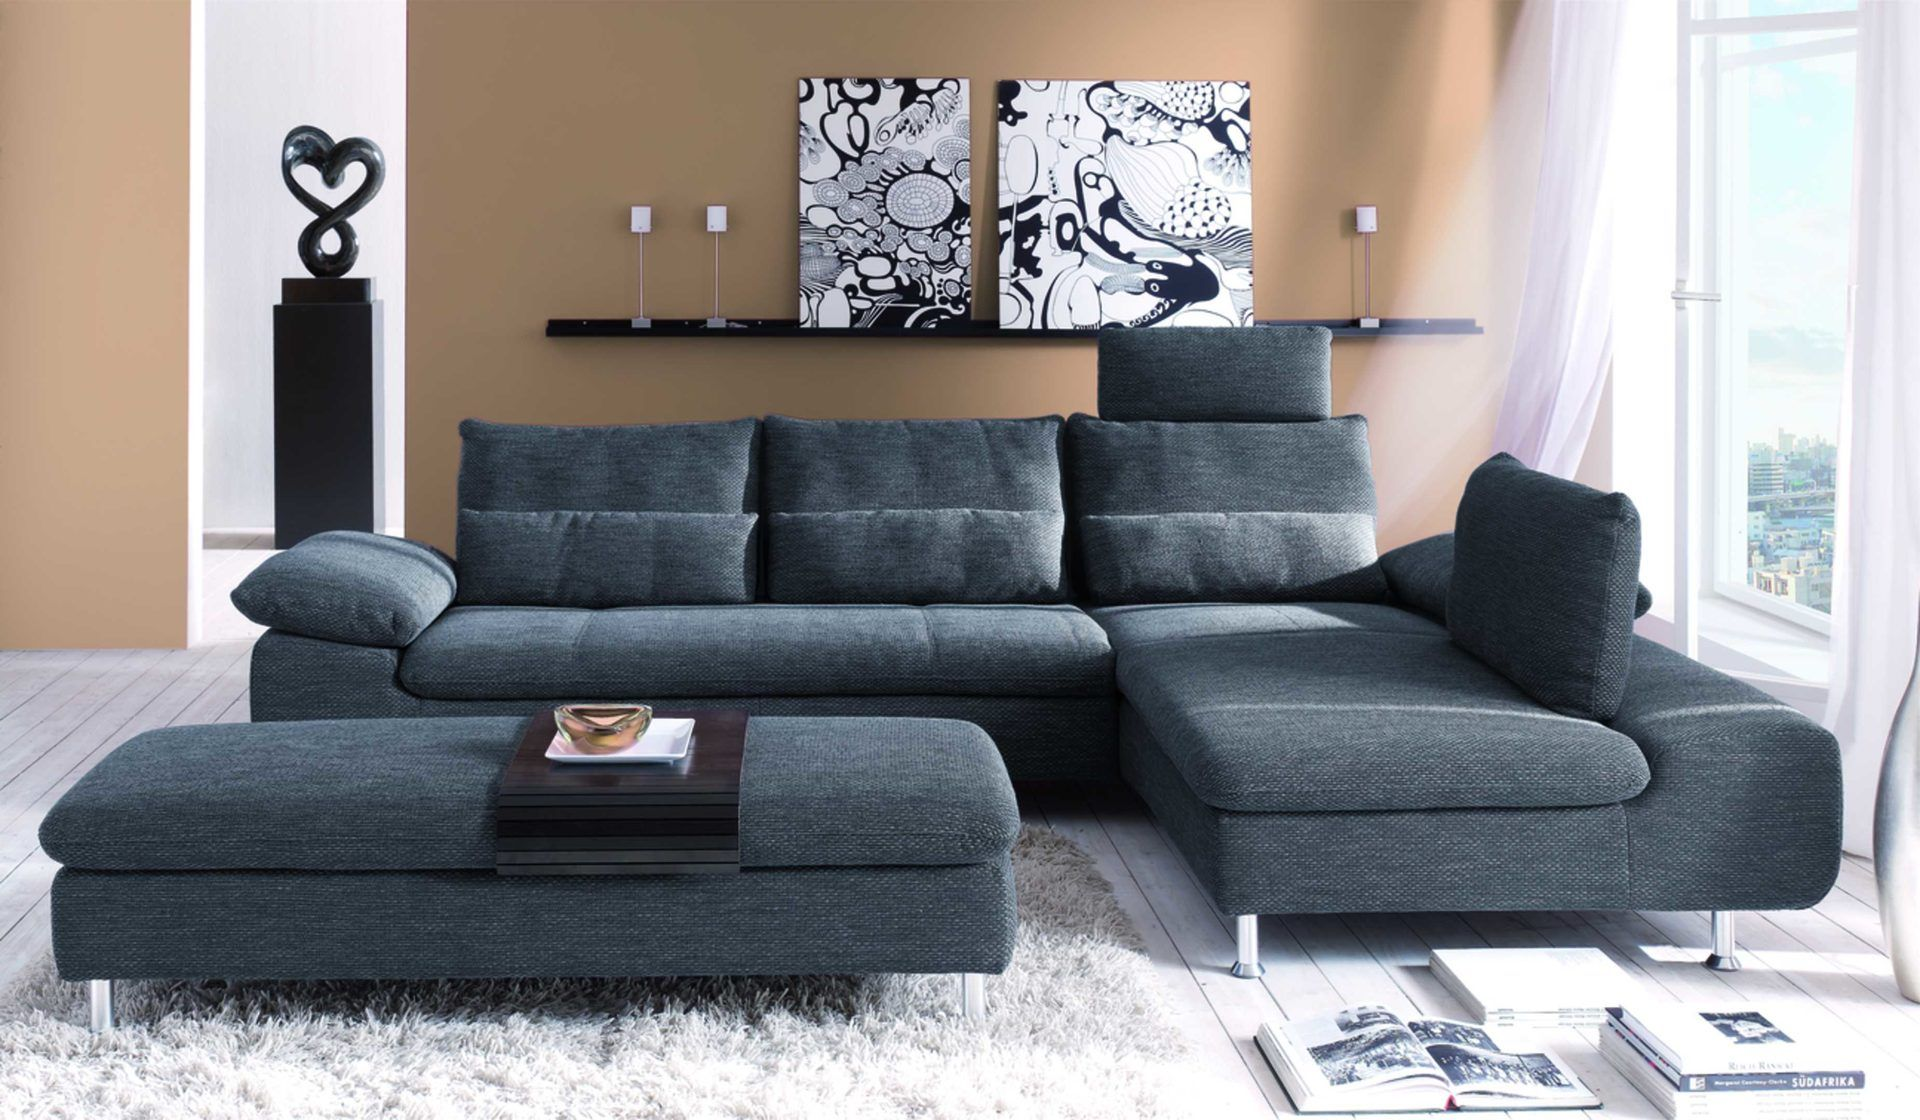 r ume wohnzimmer sofas couches eckcouch mit relaxverstellung f r entspanntes. Black Bedroom Furniture Sets. Home Design Ideas